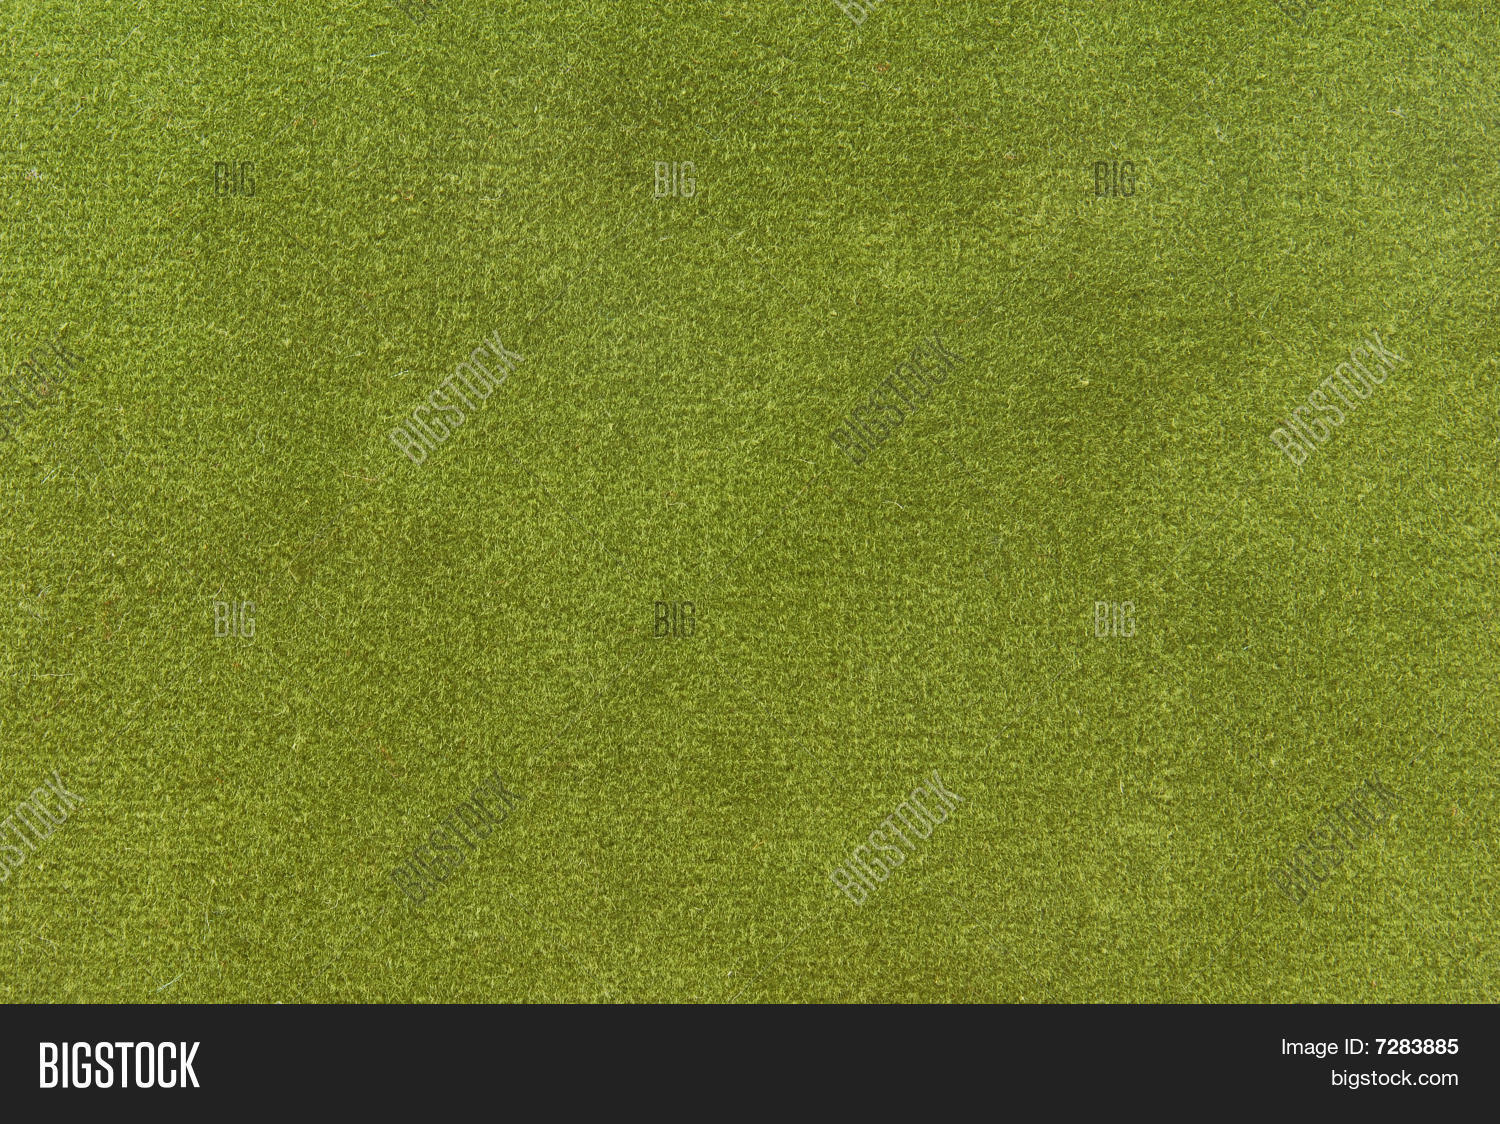 Green Velvet Fabric Image Photo Free Trial Bigstock